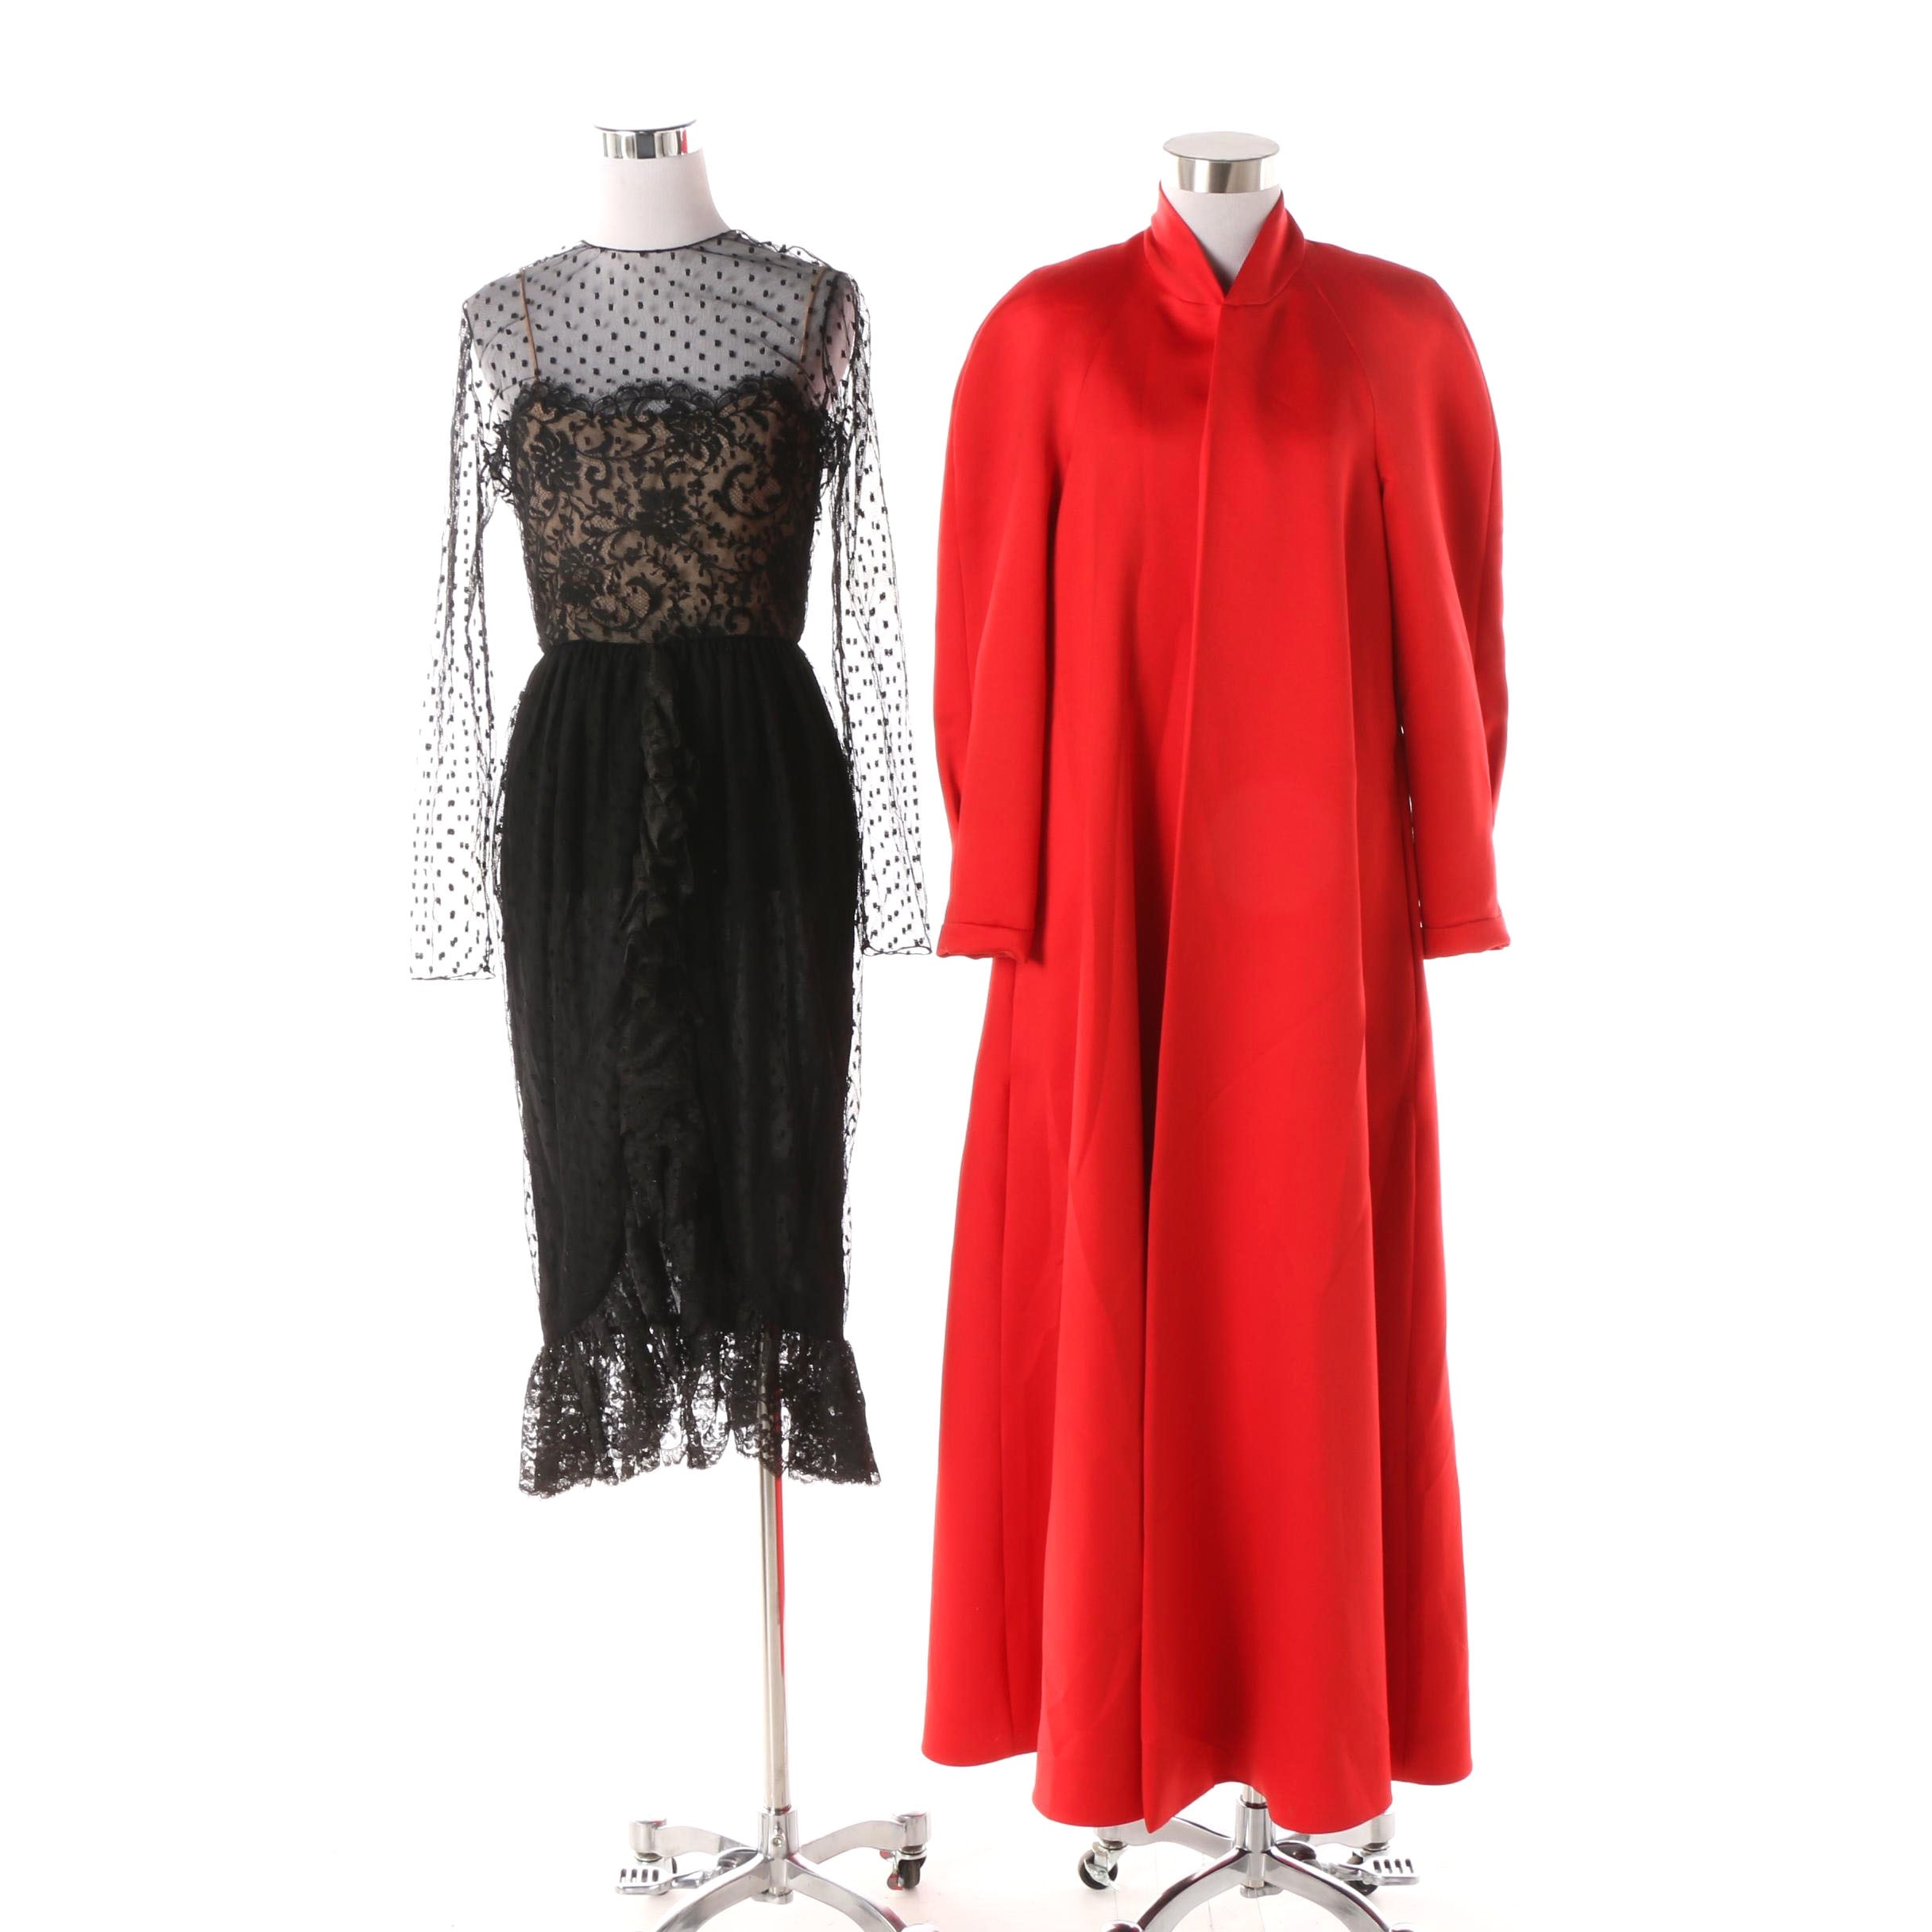 Victor Costa Red Evening Coat and Bill Blass Lace Cocktail Dress